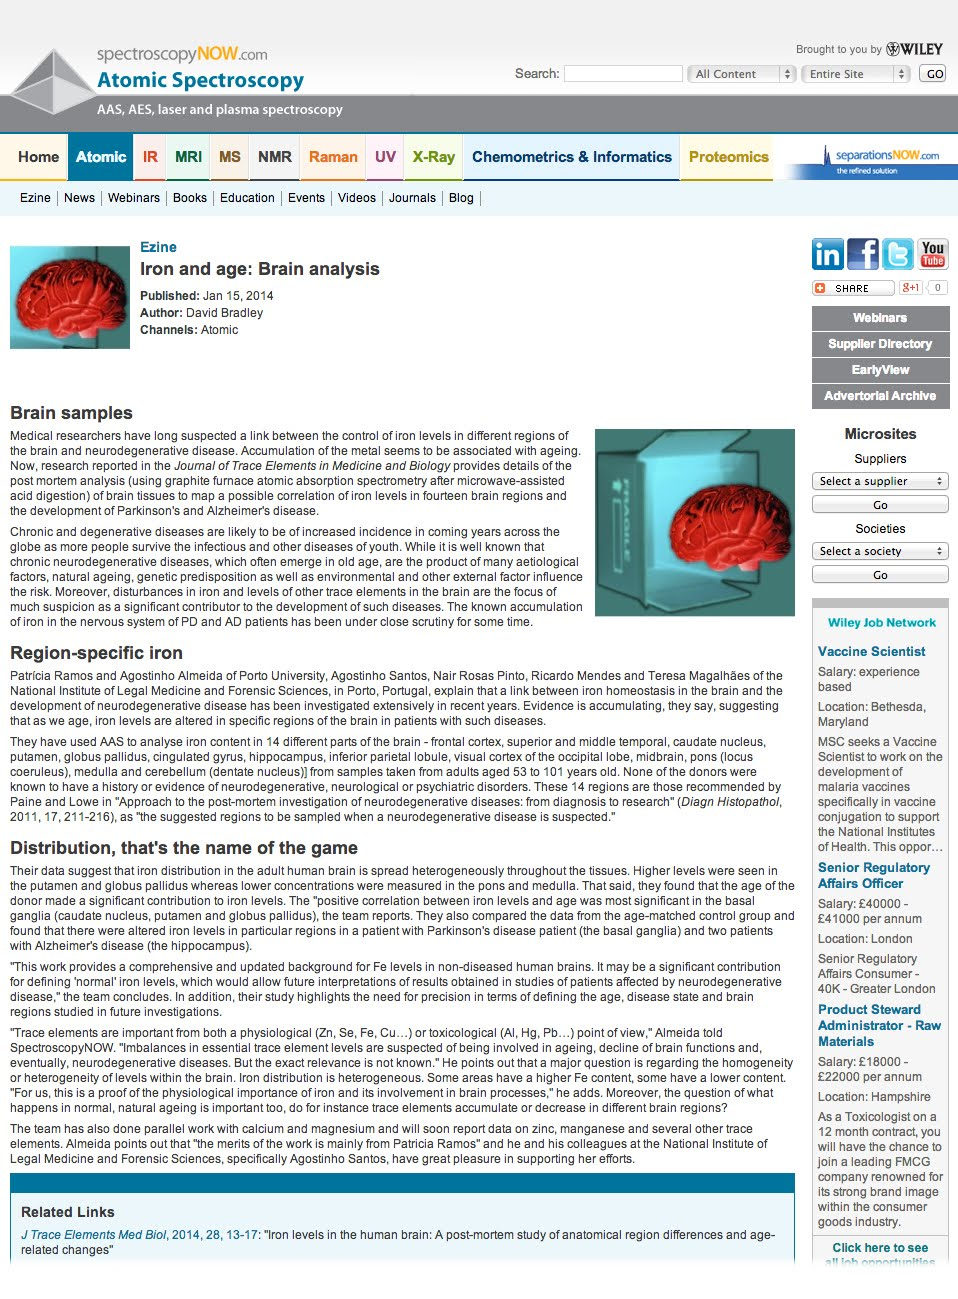 http://www.spectroscopynow.com/atomic/details/ezine/1438ca58305/Iron-and-age-Brain-analysis.html